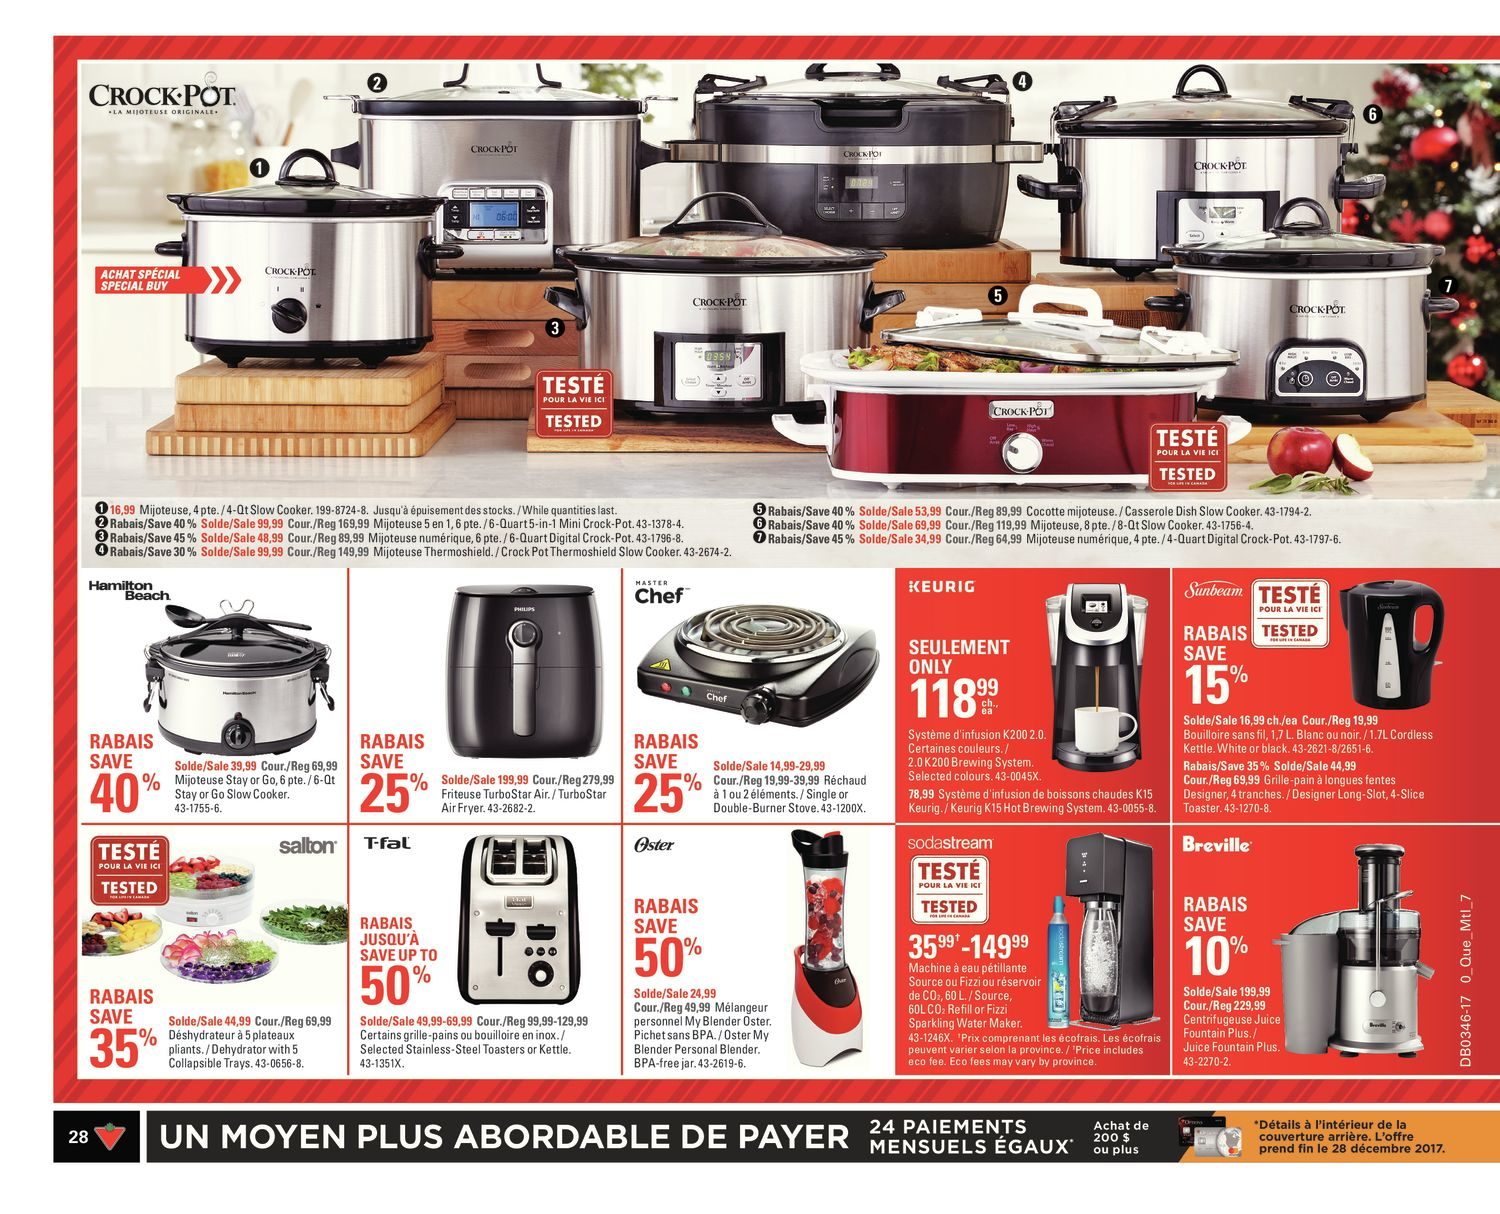 Canadian Tire Weekly Flyer Bring On The Cheer Nov 9 Philips Rice Cooker Hd 3118 32 15